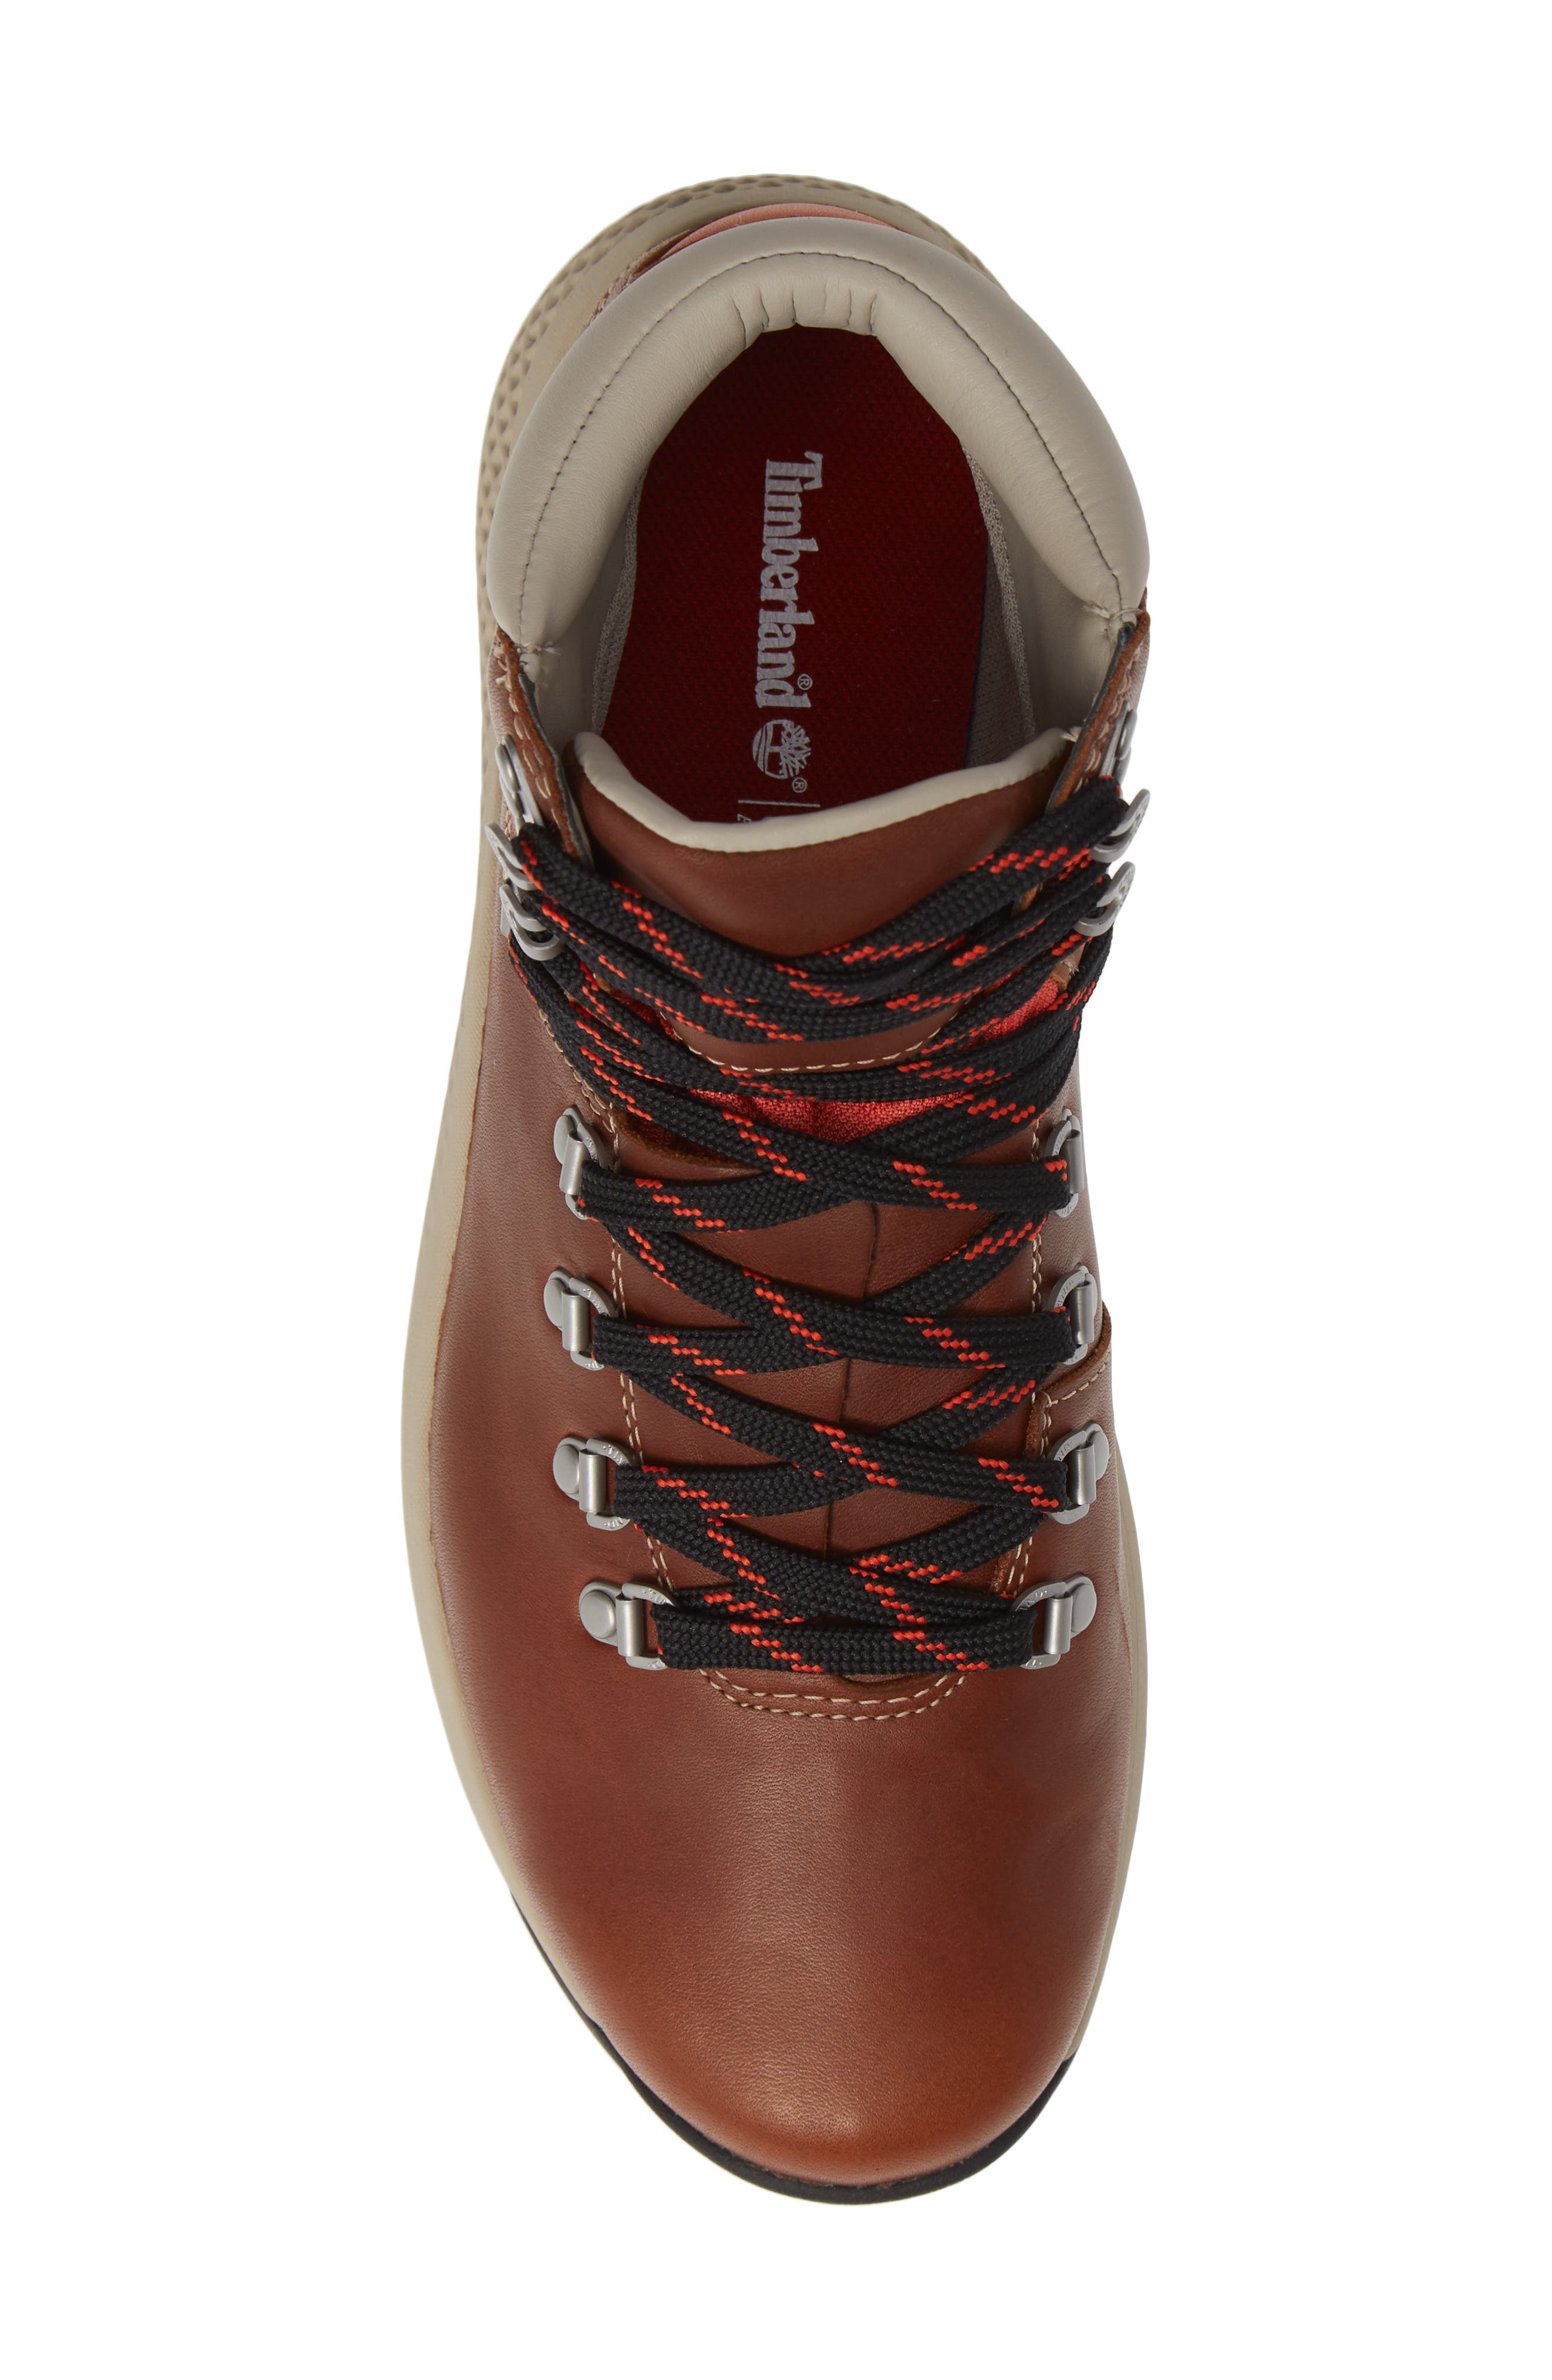 1978 Aerocore Waterproof Hiking Boot,                             Alternate thumbnail 5, color,                             BROWN LEATHER